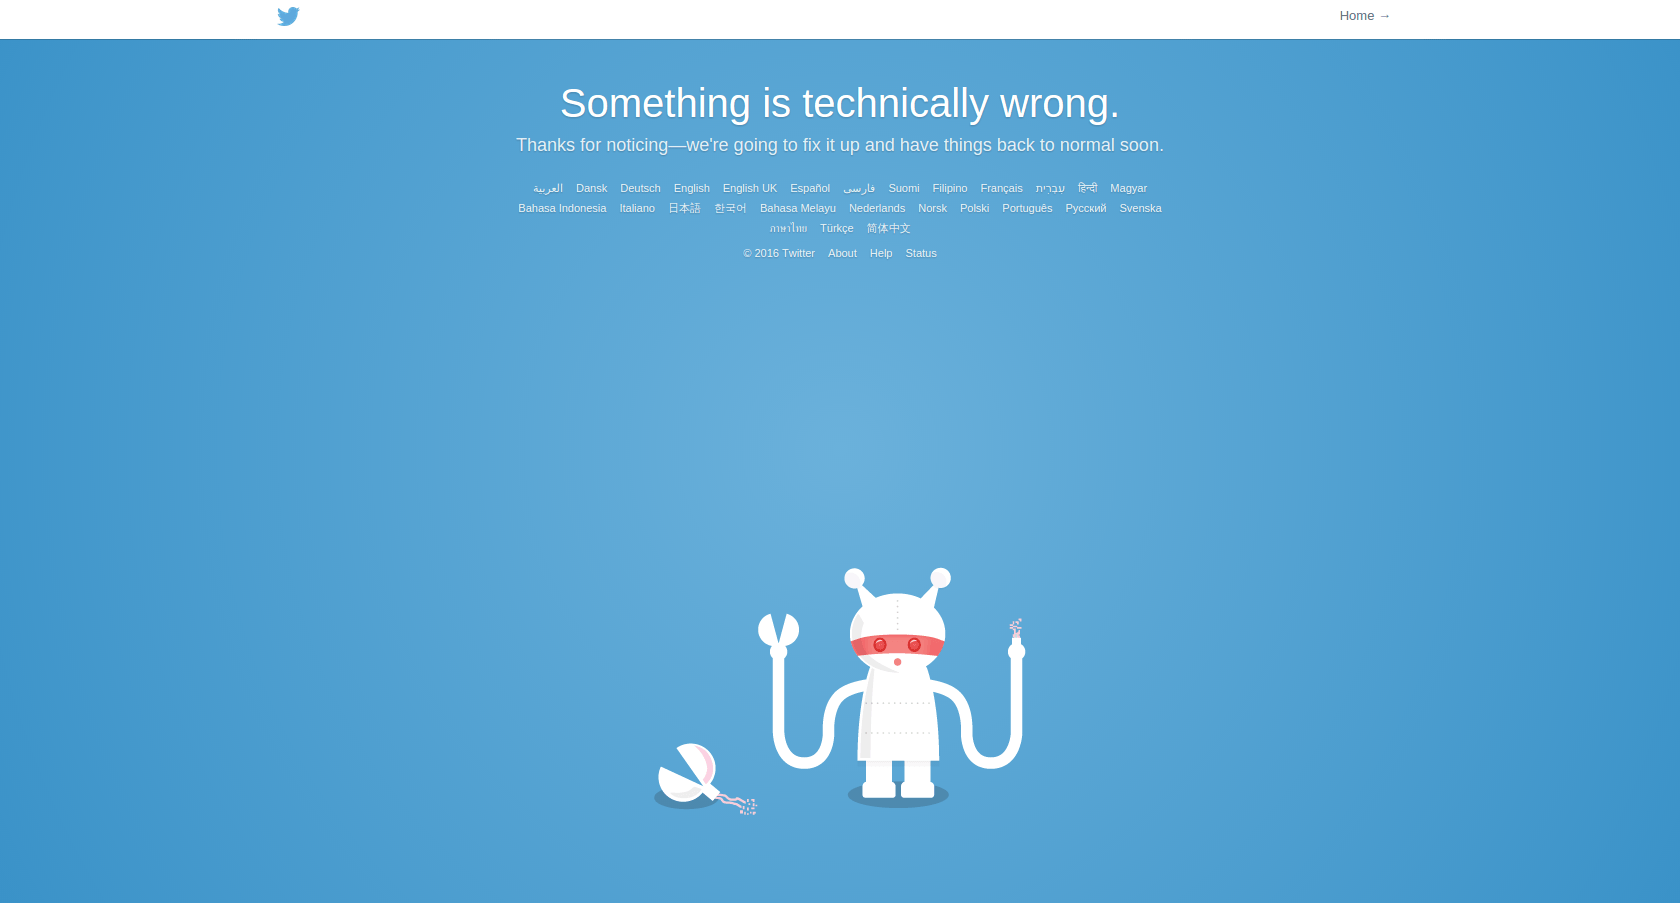 twitter is down again